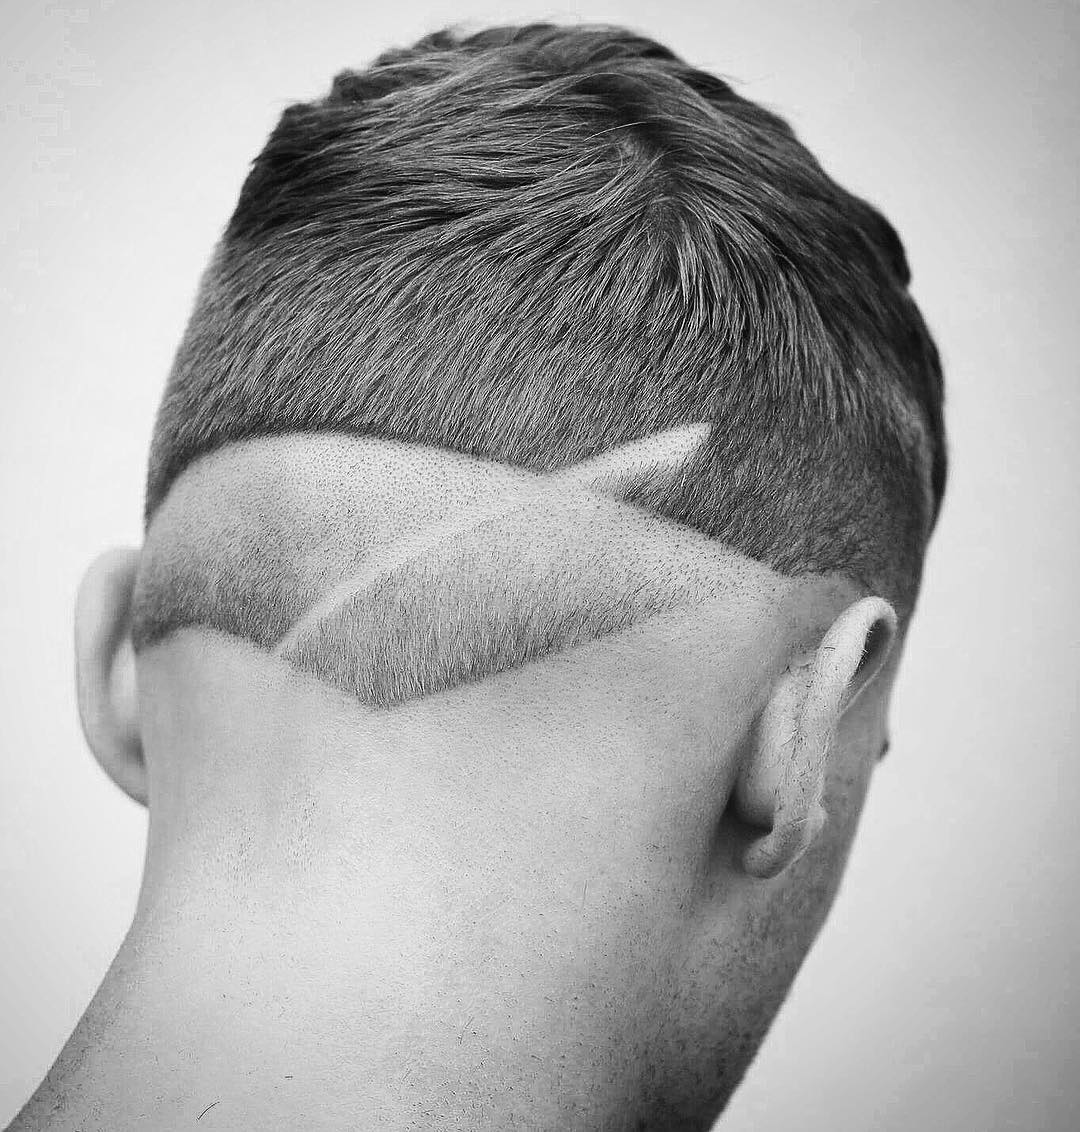 barber.josh.o.p hair tattoo shaved line mens haircuts neck design neckline hair